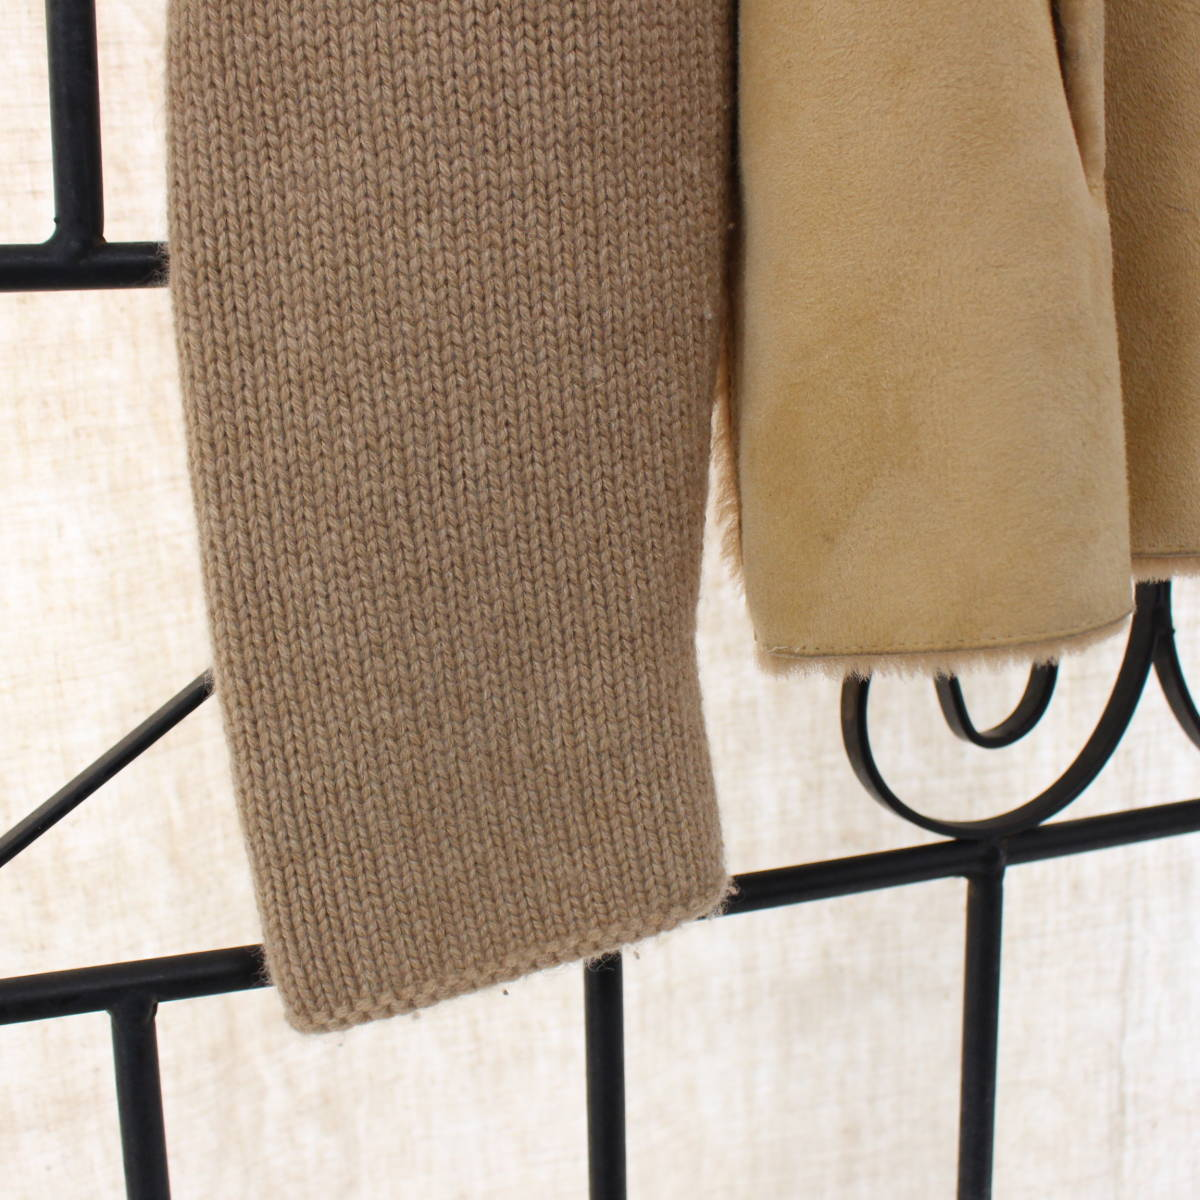 BRUNELLO CUCINELLI CASHMERE MOUTON JACKET MADE IN ITALY/ブルネロクチネリカシミヤムートンジャケット_画像6